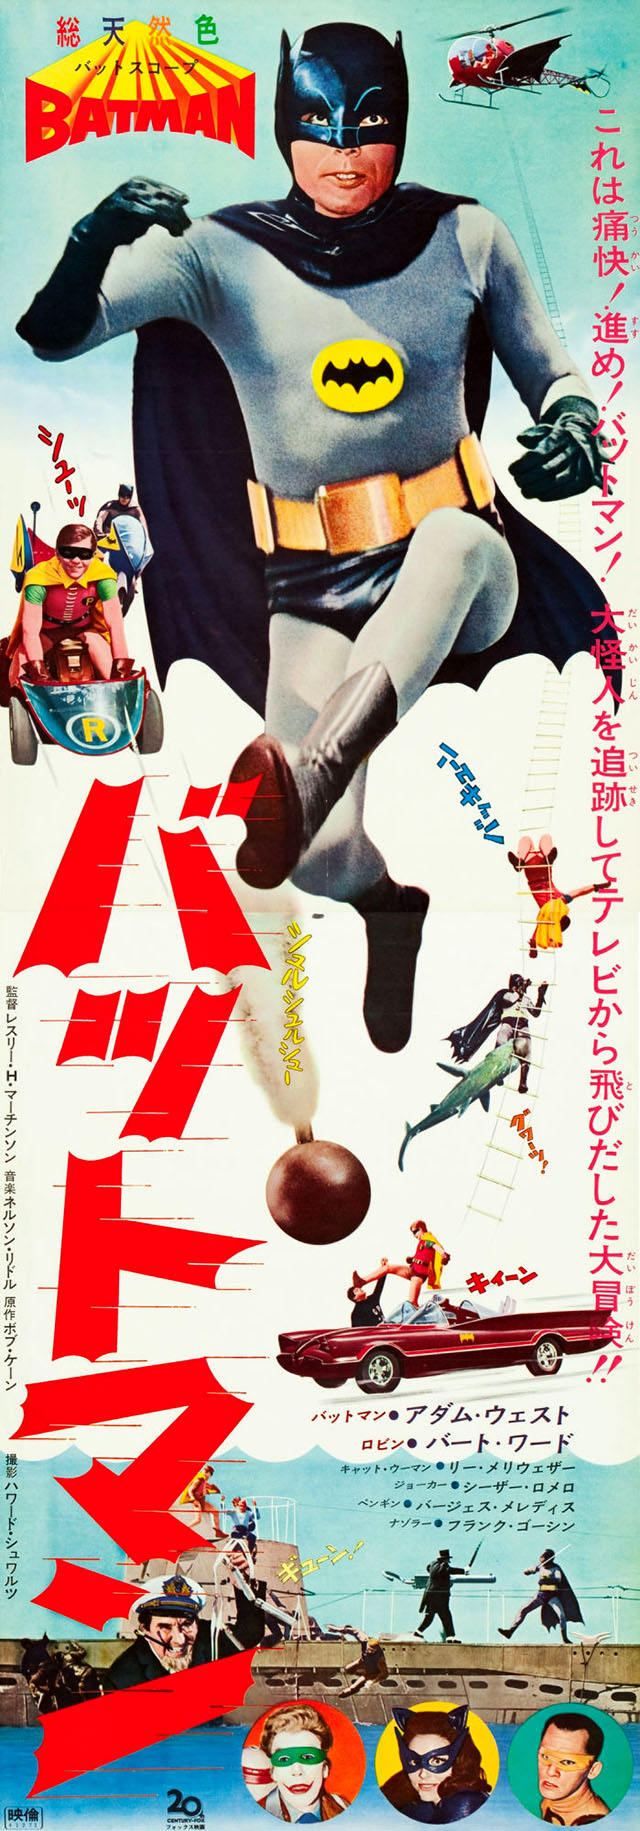 Batman (1966) Japanese theatrical poster